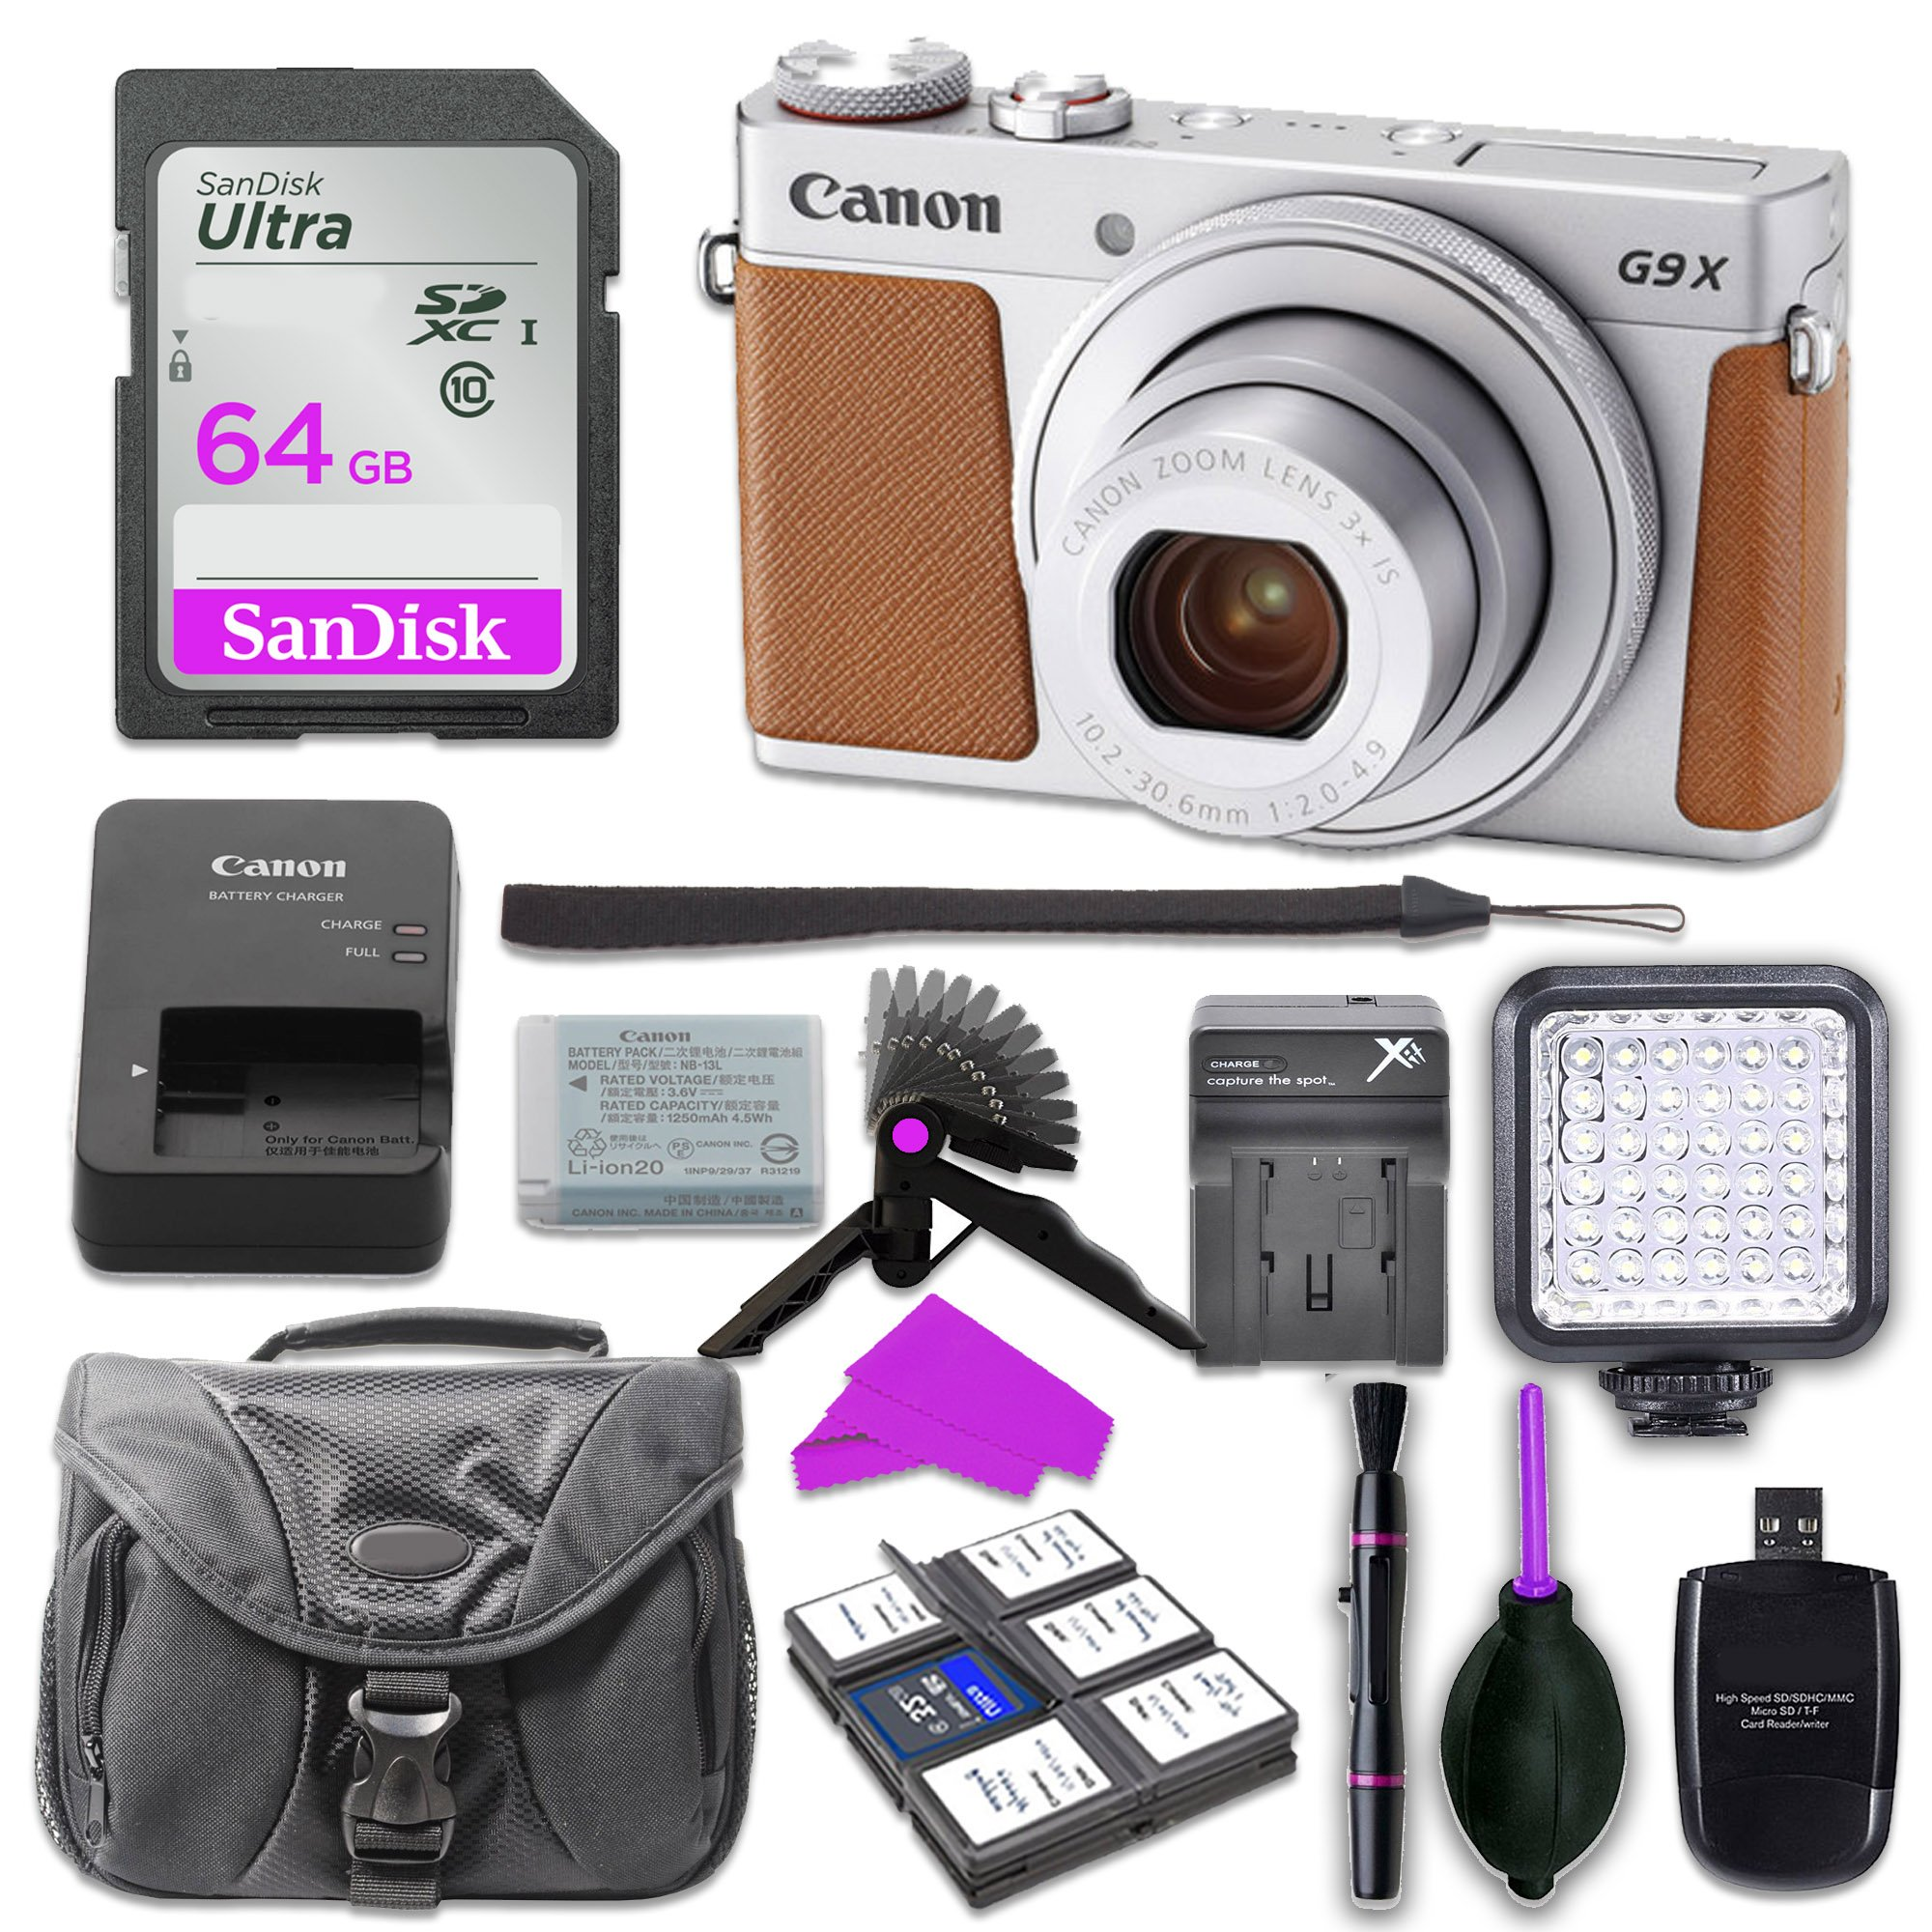 Canon PowerShot G9 X Mark II Digital Camera (Silver) with Built-in Wi-Fi & Bluetooth w/ 3 inch LCD with 64GB SD Memory Card + Mini Stable Tripod and Grip + LED Video Light Accessory Bundle